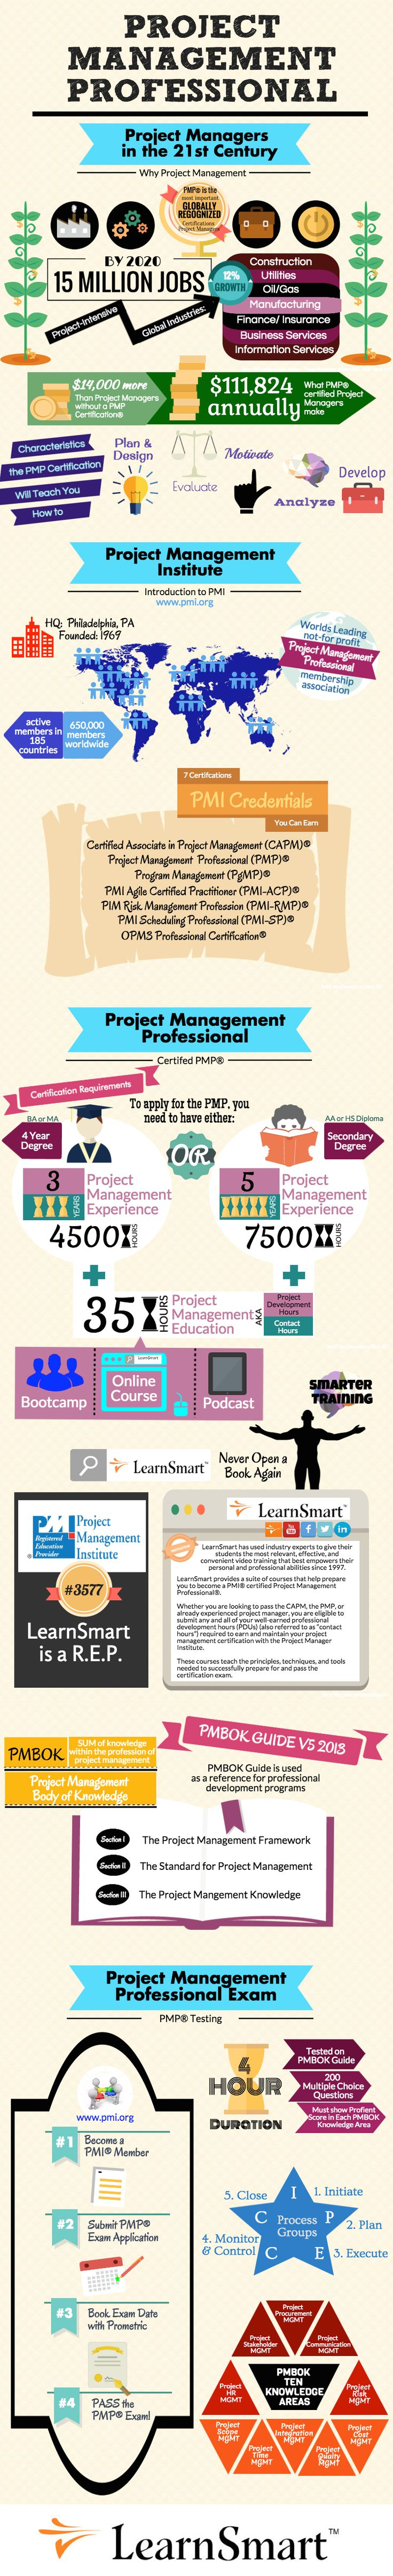 155 best pmp images on pinterest project management business 155 best pmp images on pinterest project management business management and change management 1betcityfo Image collections